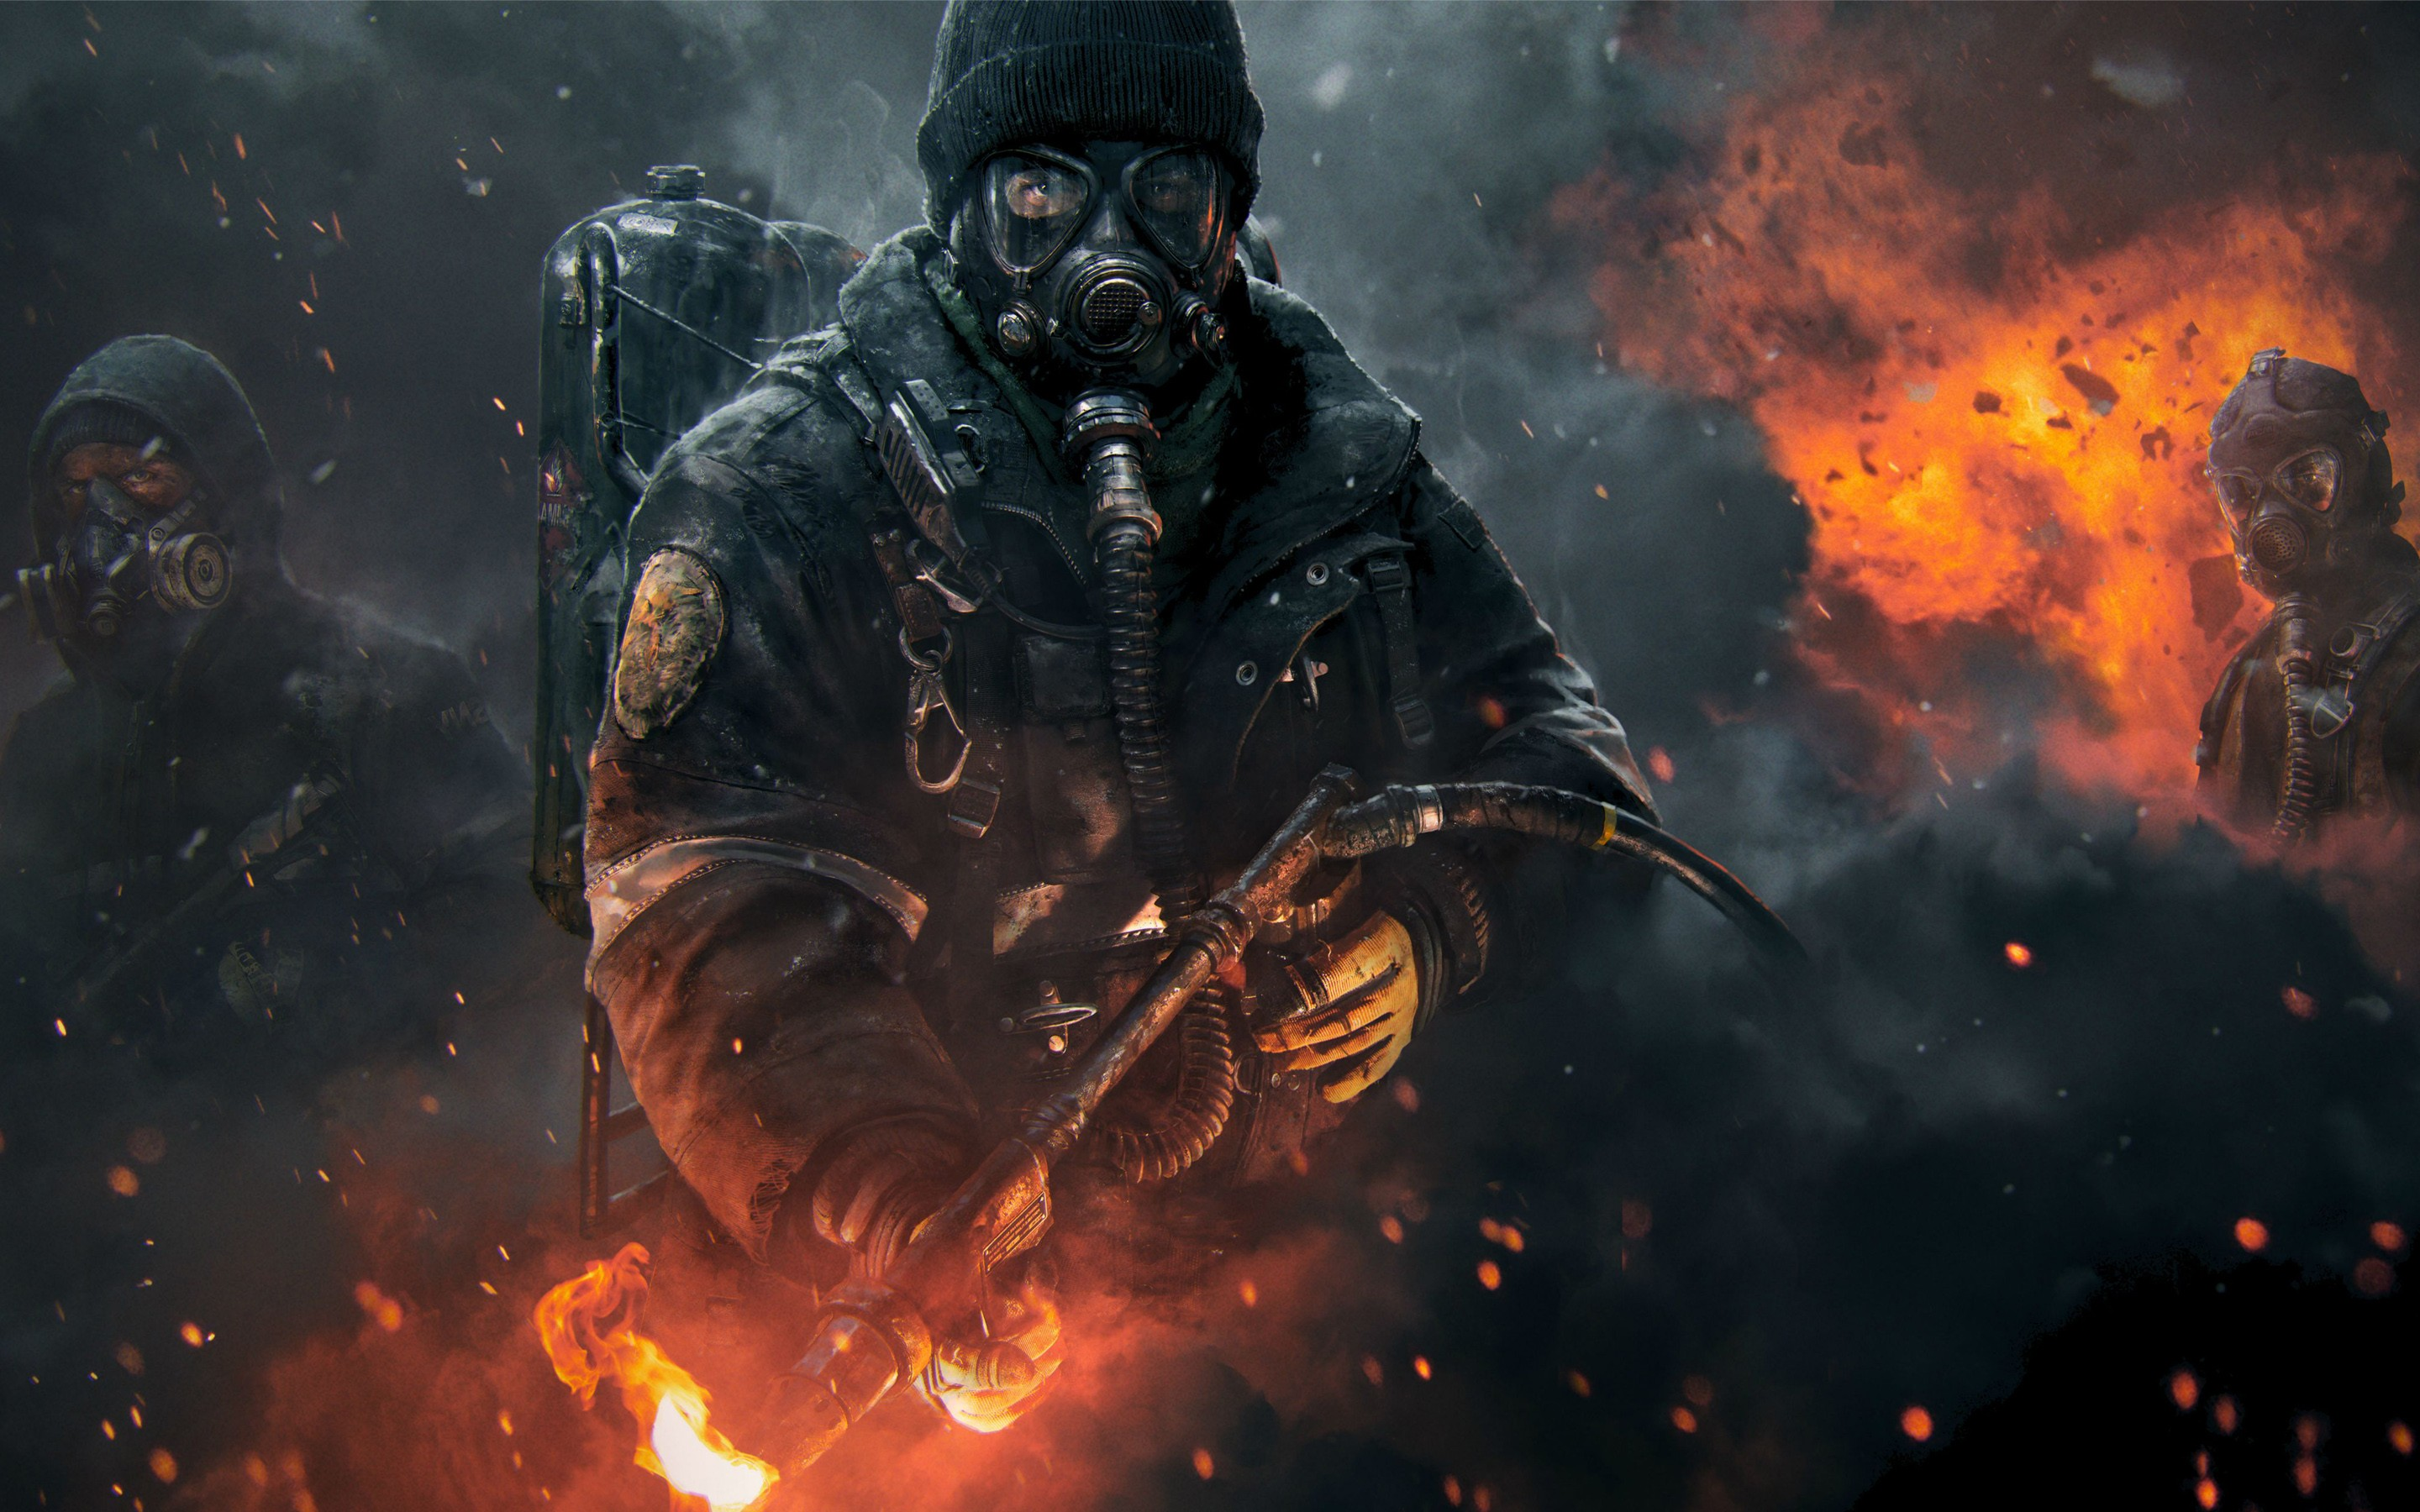 320x240 Tom Clanycs The Division Apple Iphone Ipod Touch